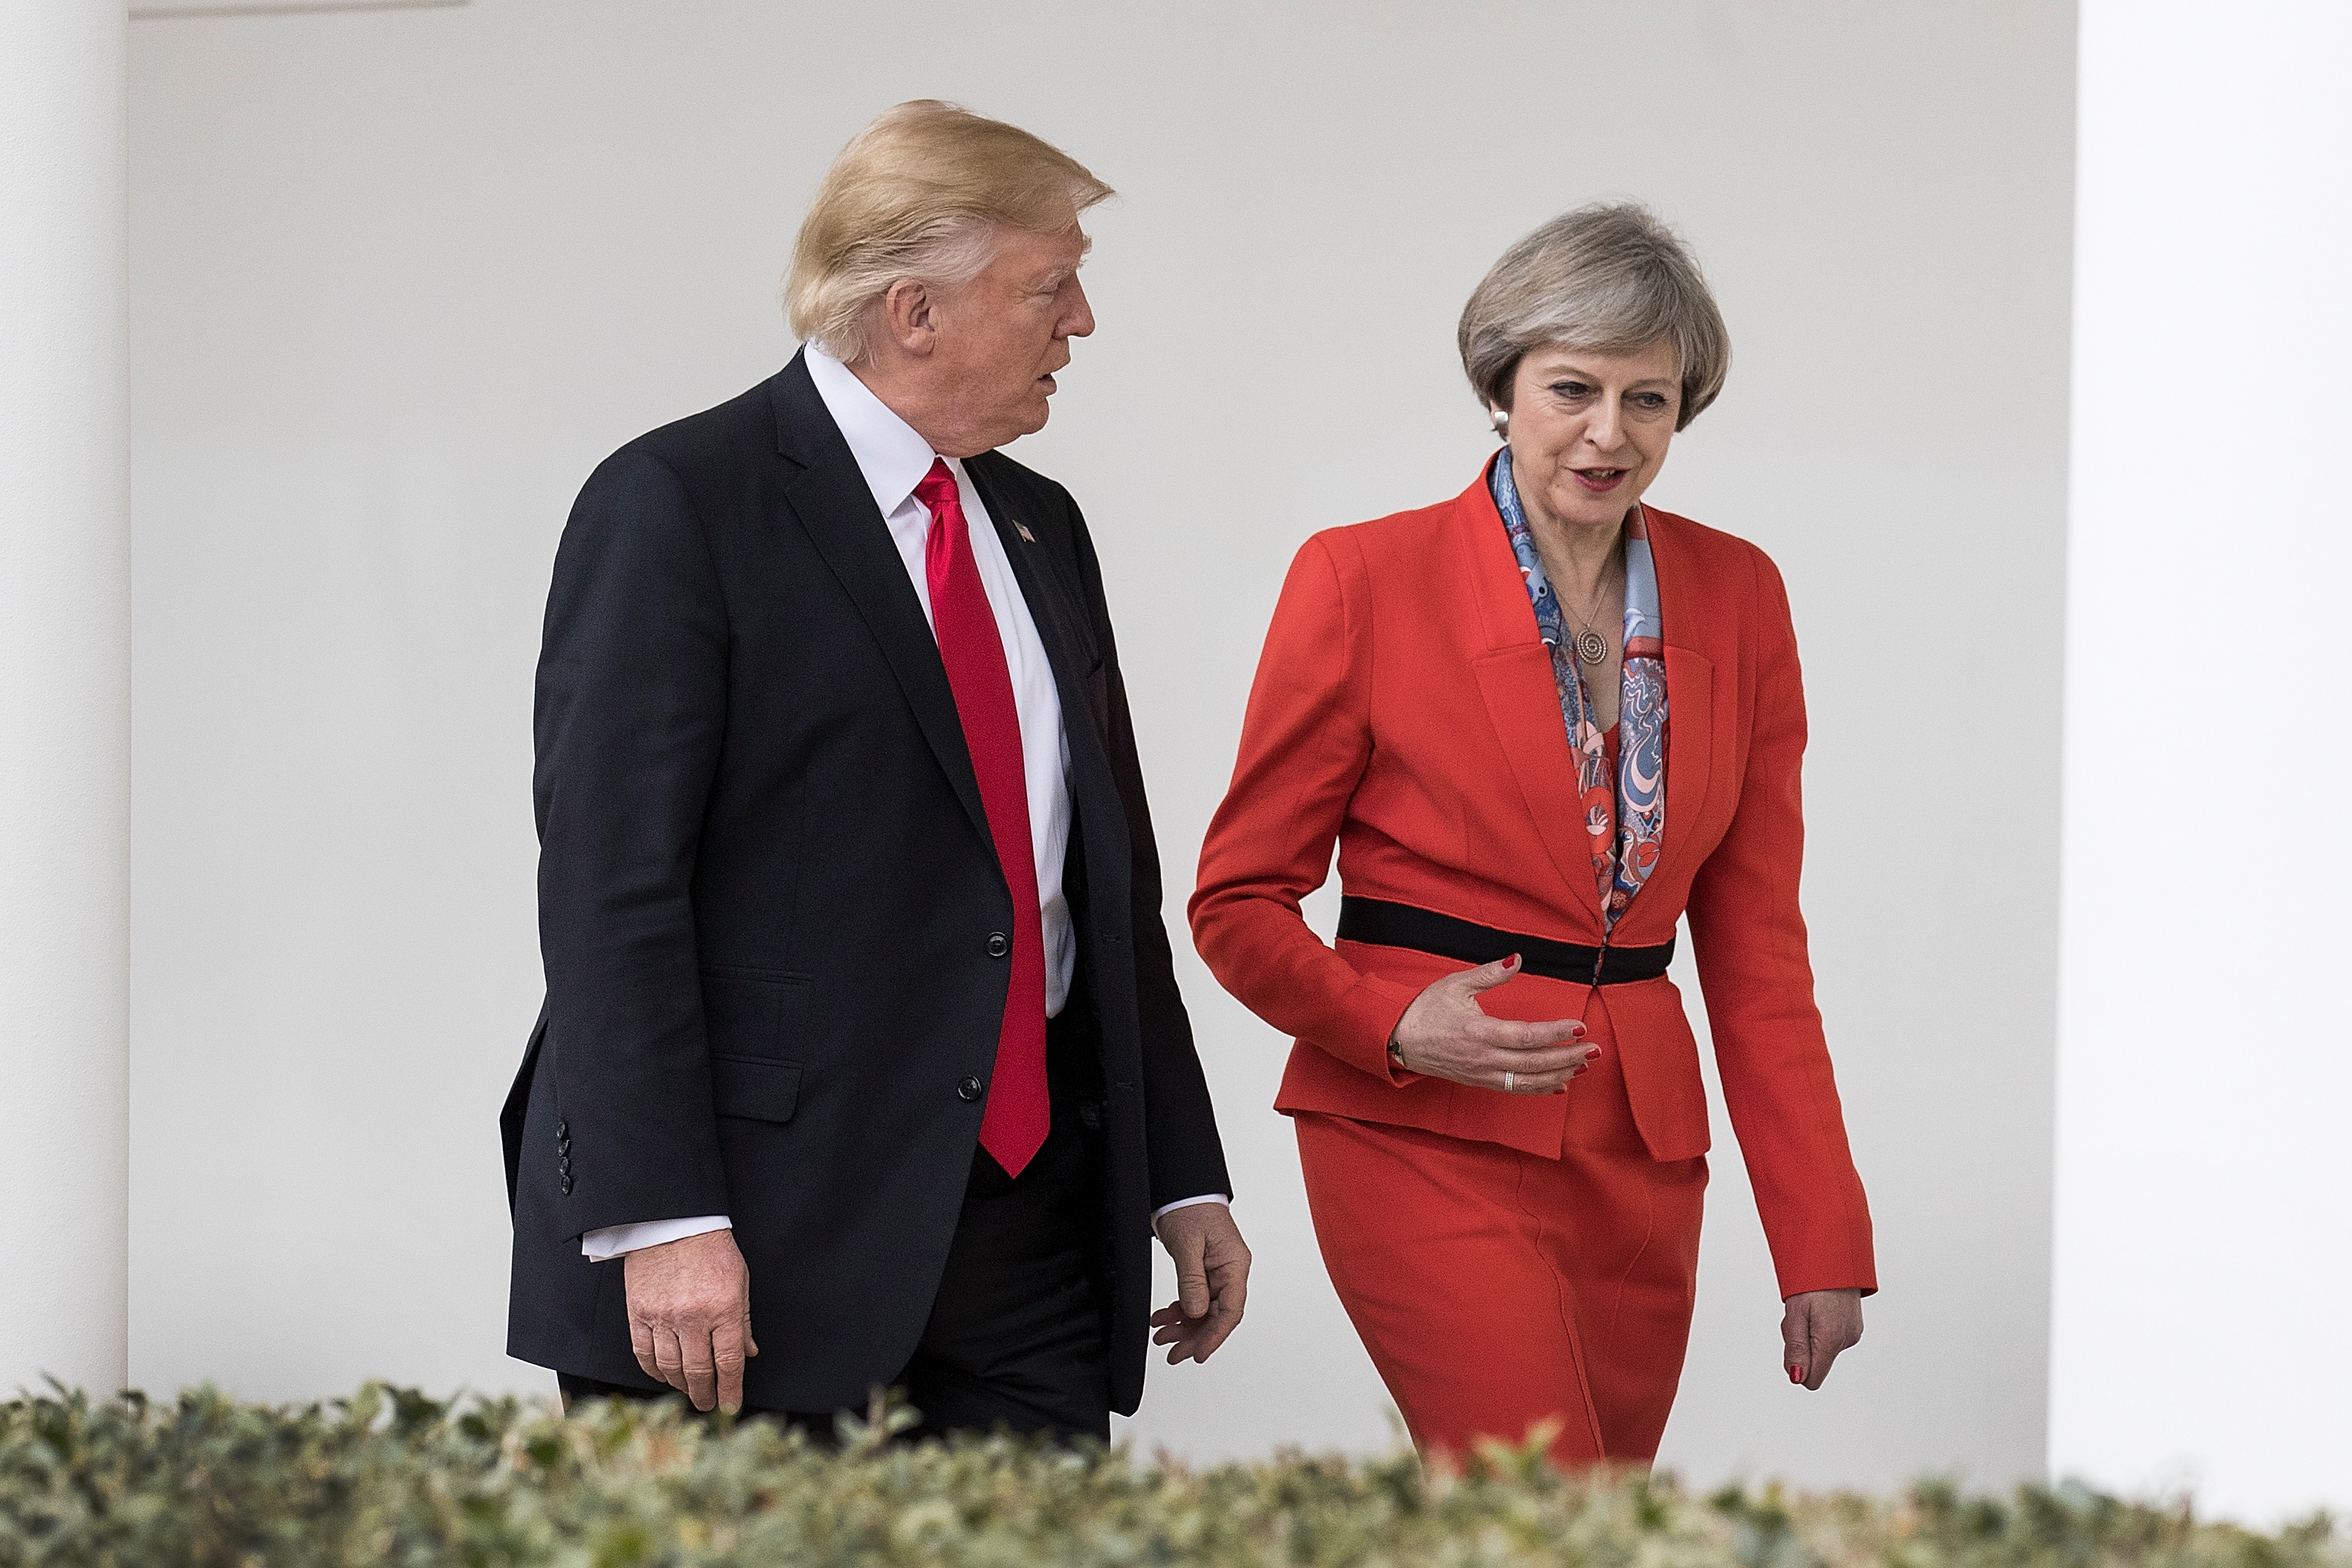 British Prime Minister Theresa May and U.S. President Donald Trump walk along The Colonnade of the West Wing at The White House on January 27, 2017 in Washington, DC.